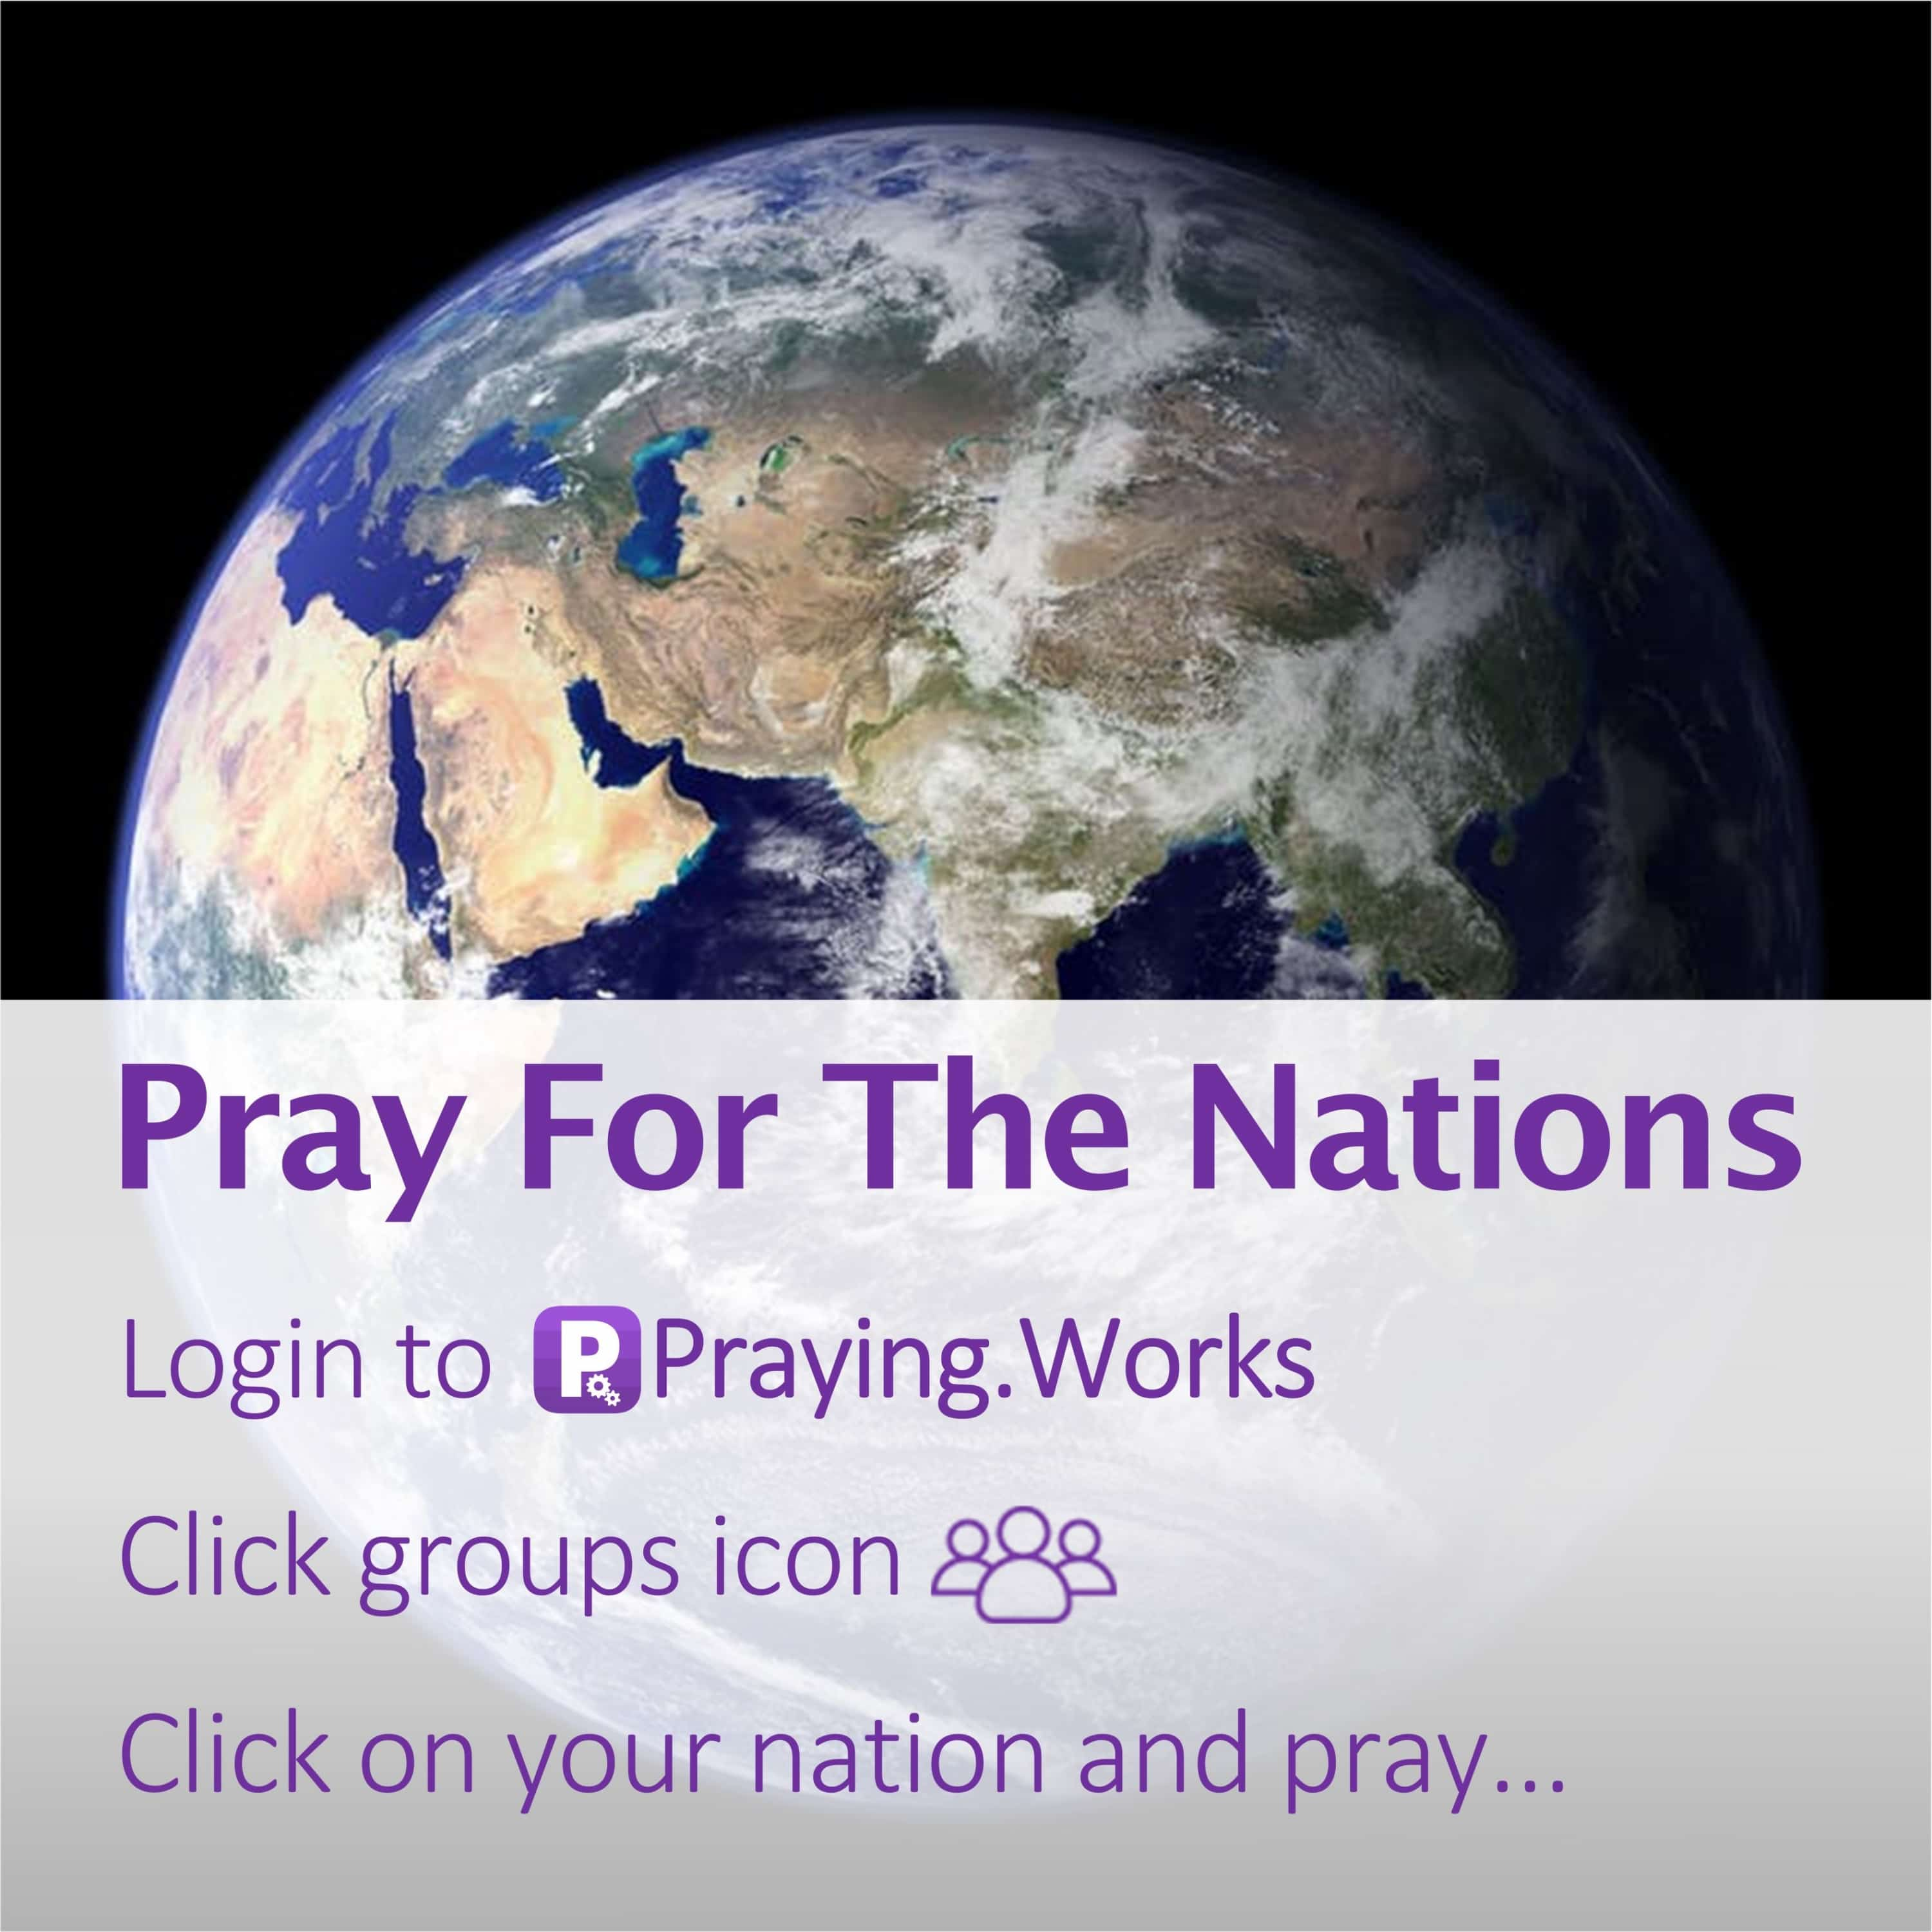 Pray for the Nations 3/7